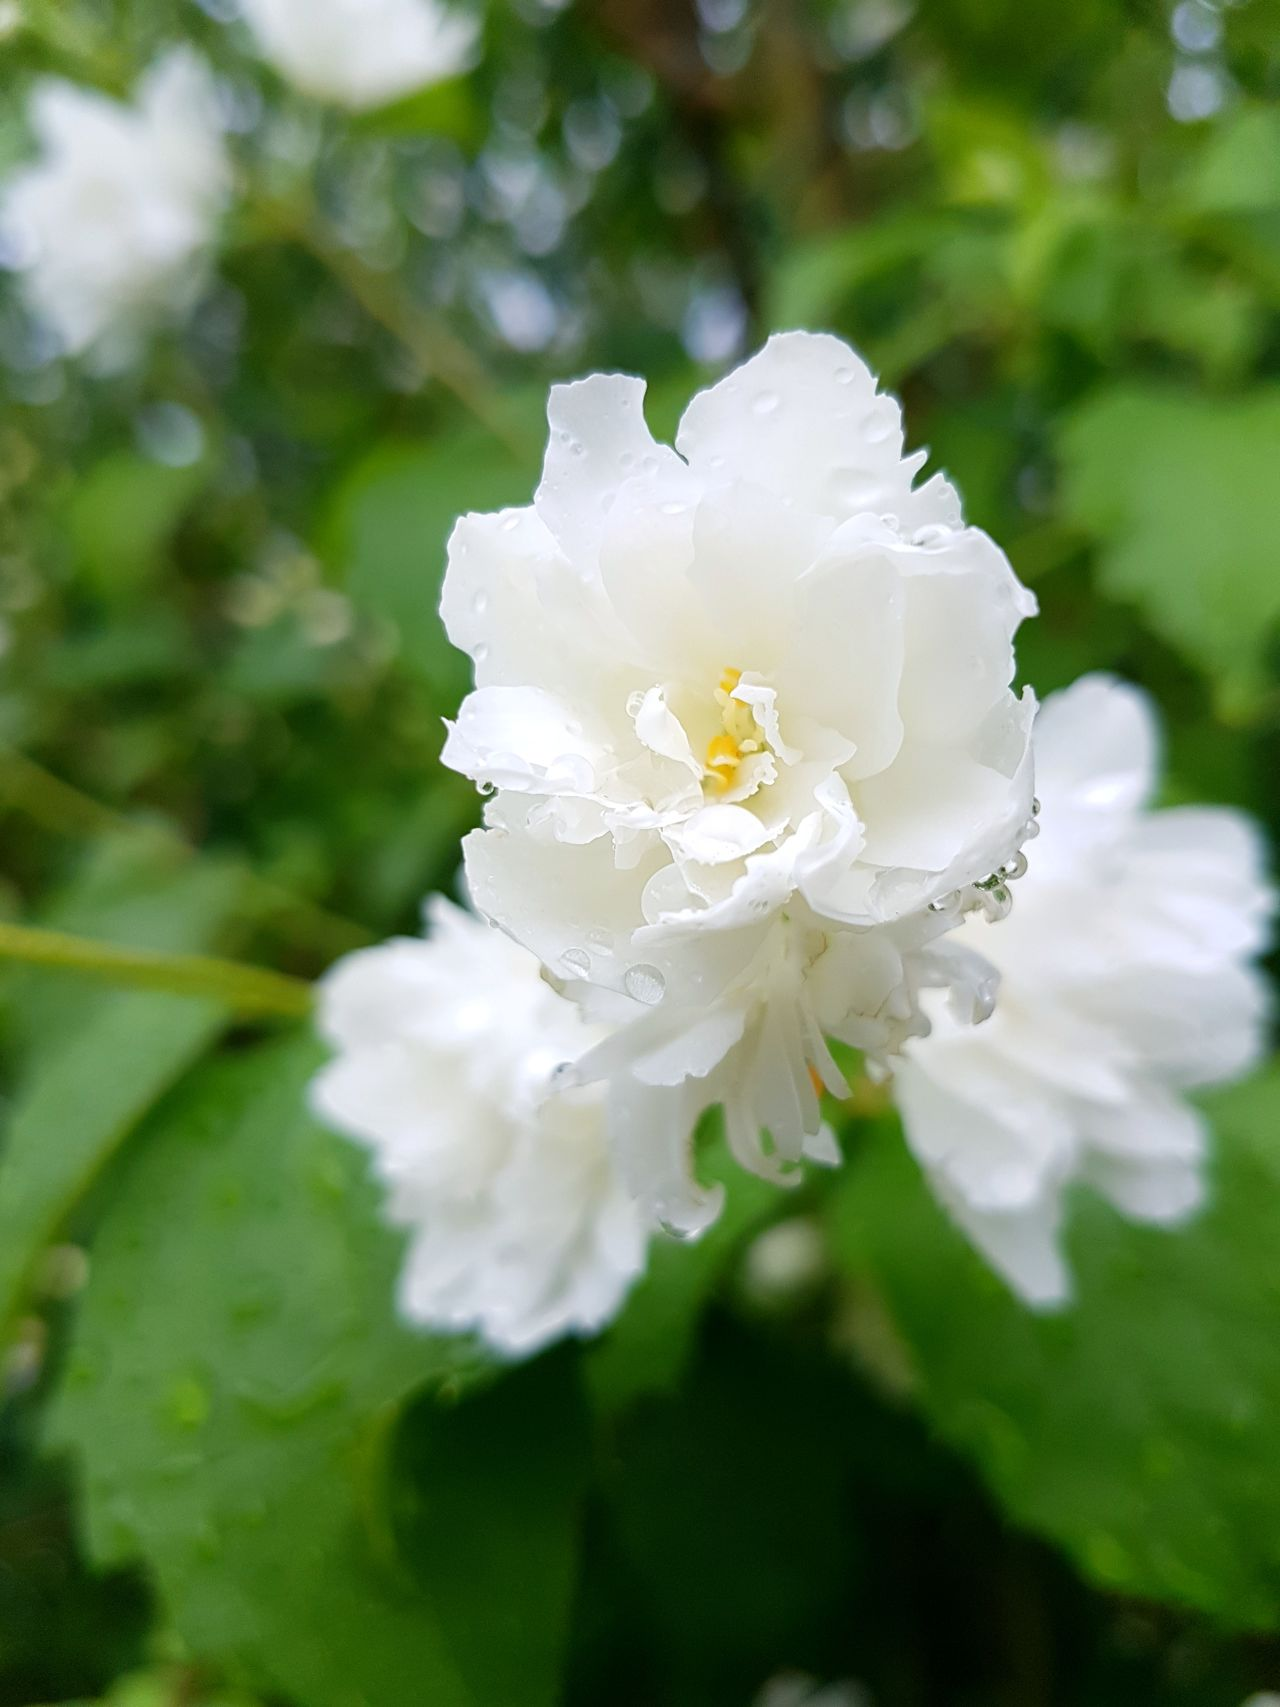 Flower White Color Close-up Nature Petal Day Fragility No People Flower Head Plant Focus On Foreground Outdoors Jasmin Jasmine Flower Jasmine Tea Herbal Sun Raindrops Rain Afterrain After Rain Beauty In Nature Freshness Growth